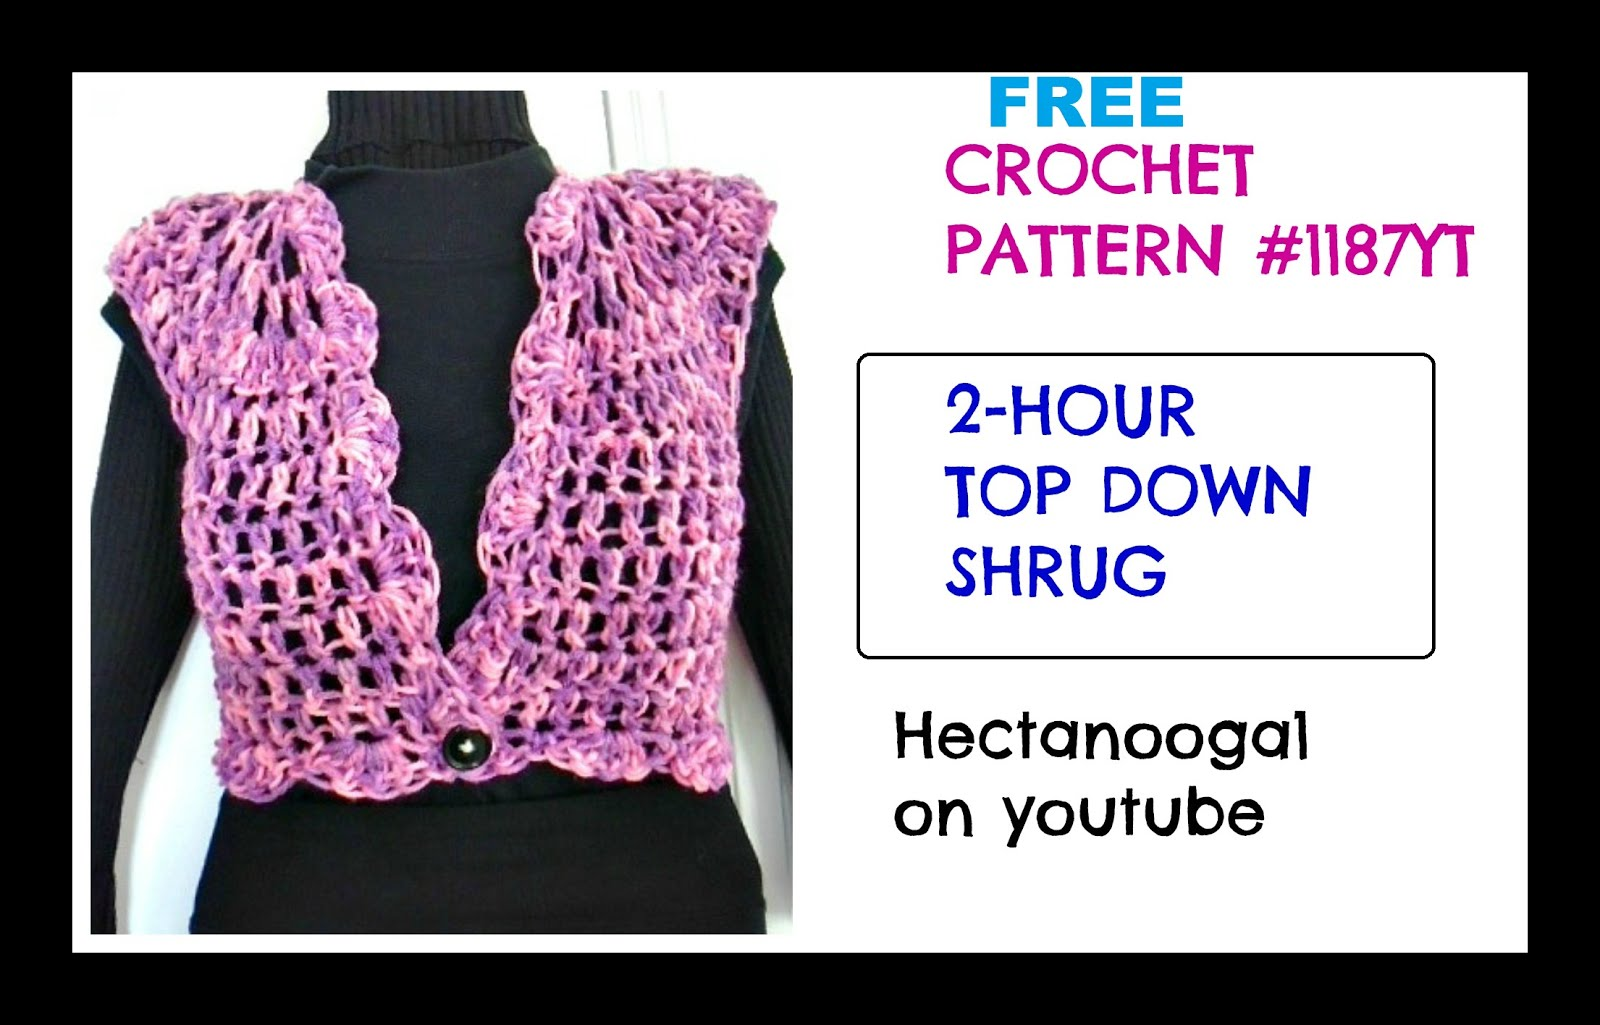 HECTANOOGA PATTERNS: FREE CROCHET PATTERN - 1187yt - CROCHET SHRUG ...